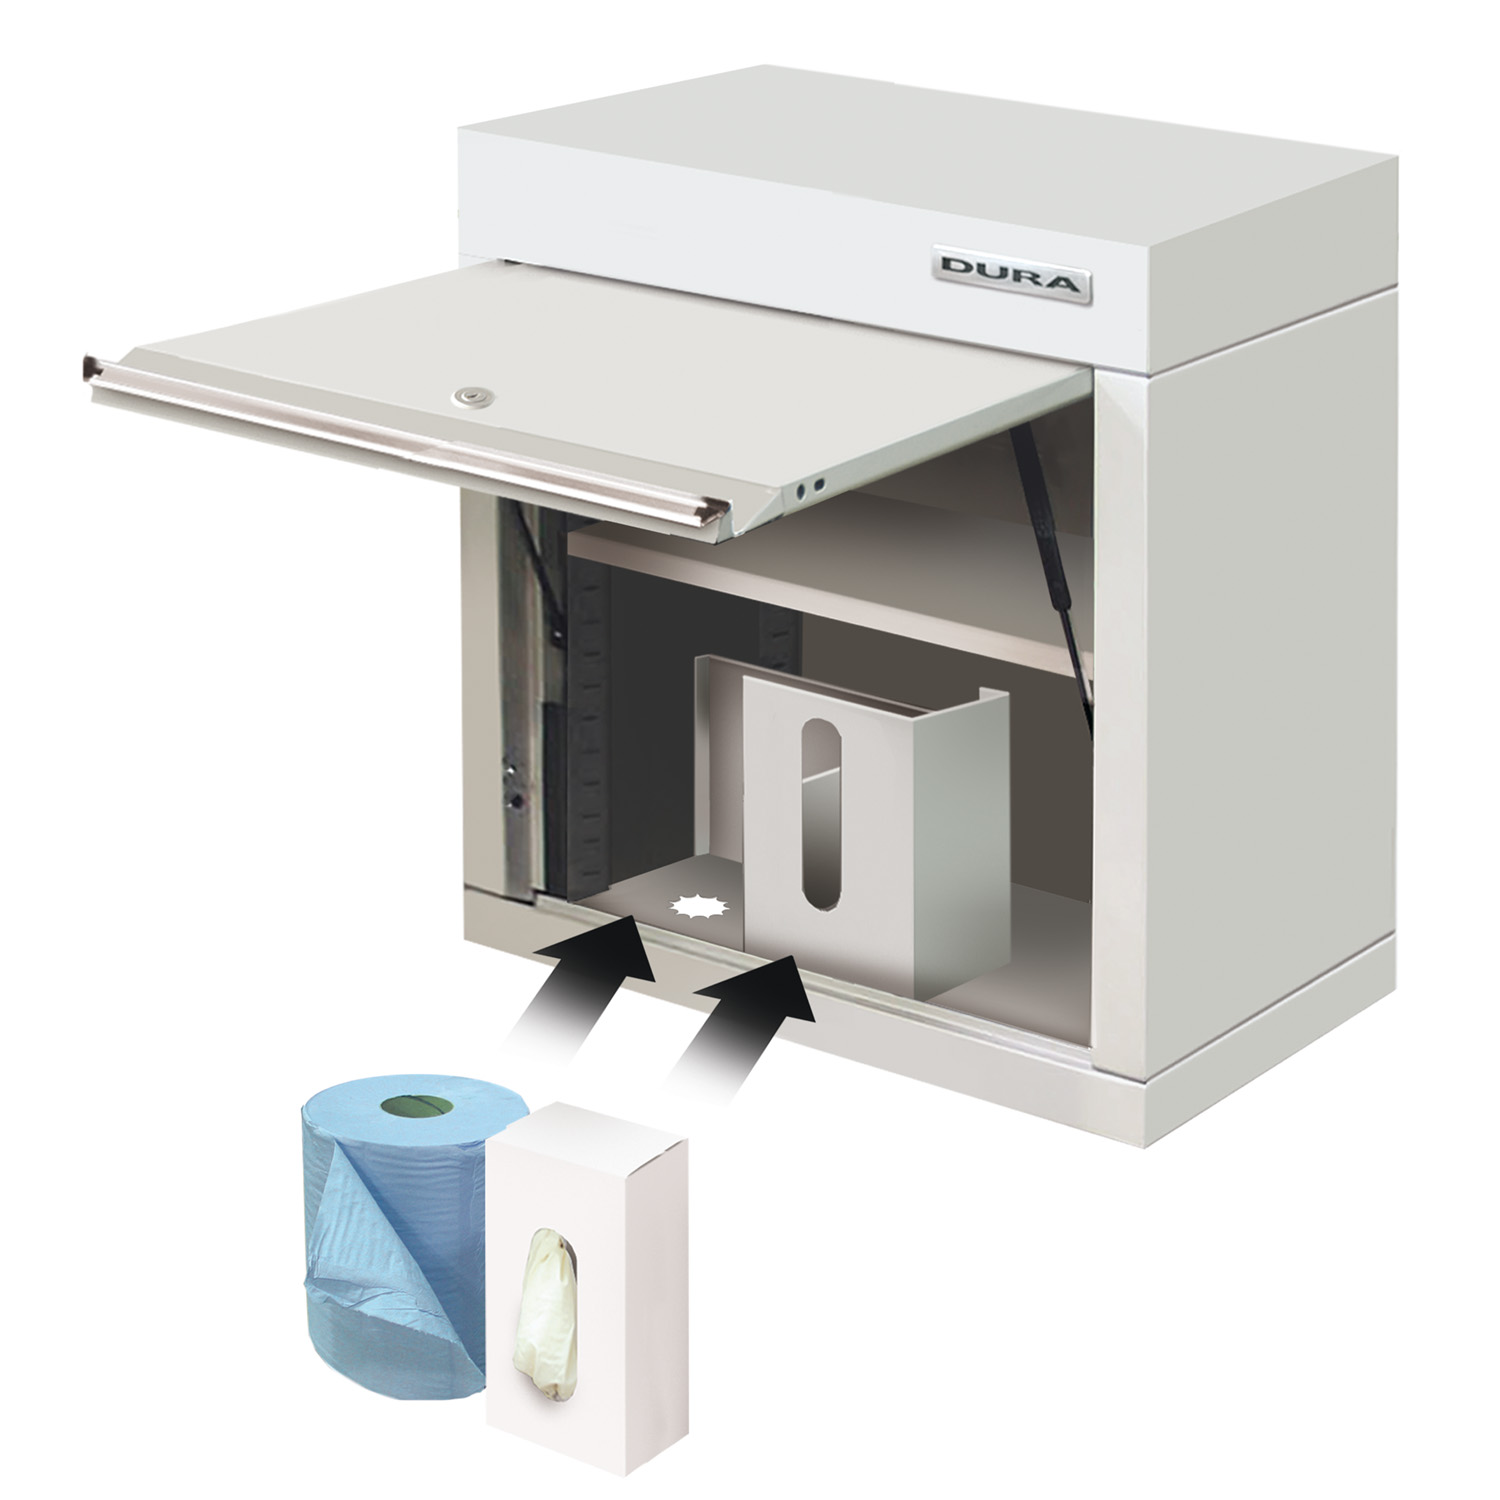 Wall cabinet with towel & glove dispenser (600mm)